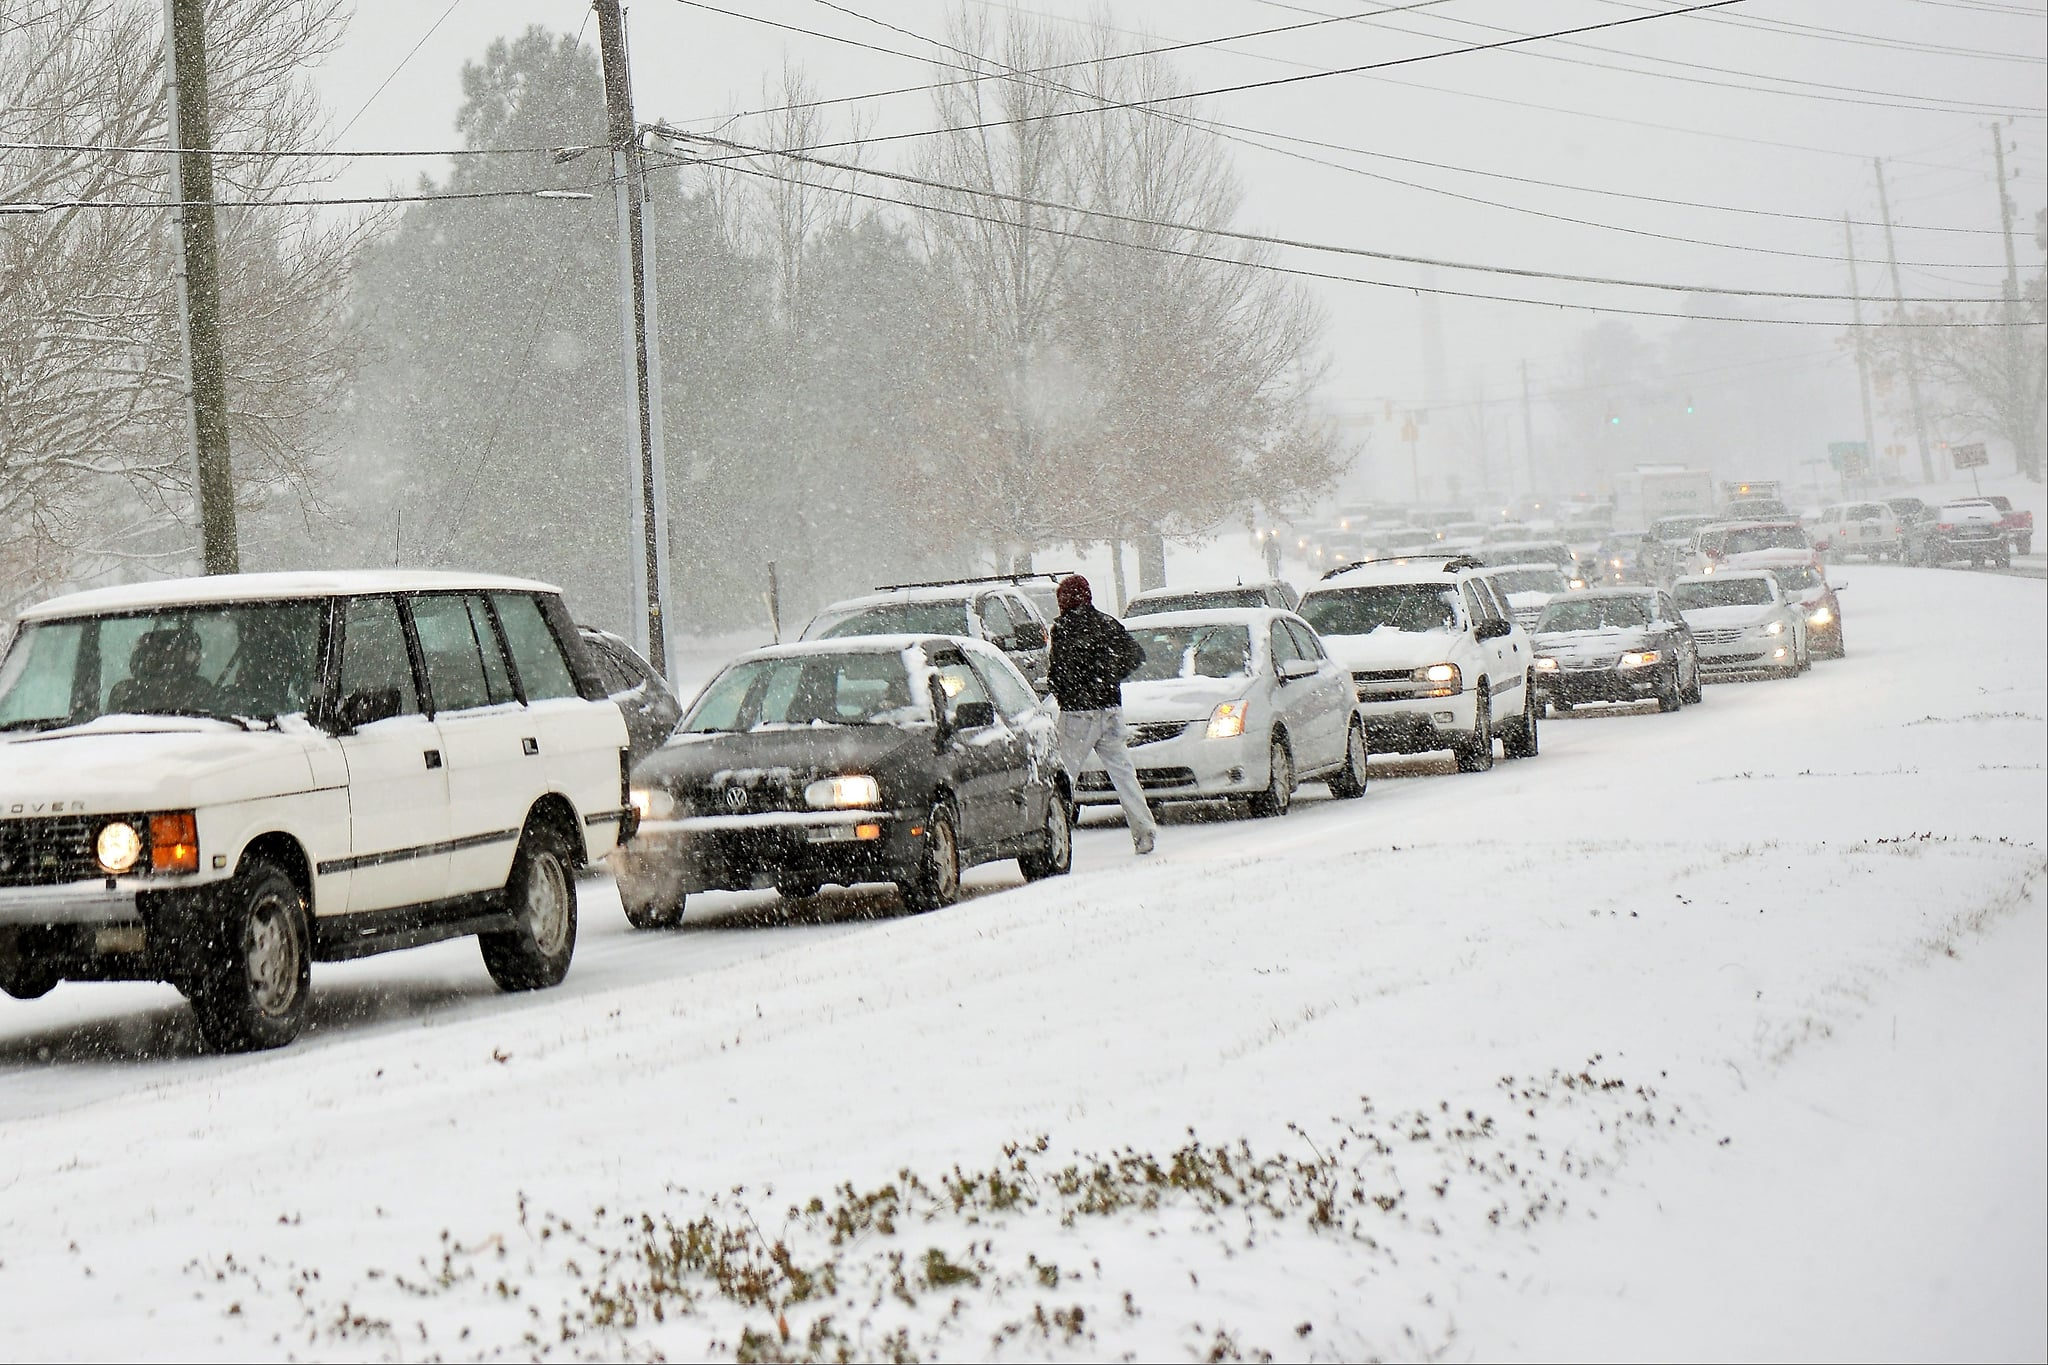 People in Raleigh, NC, were caught in crazy traffic jams.